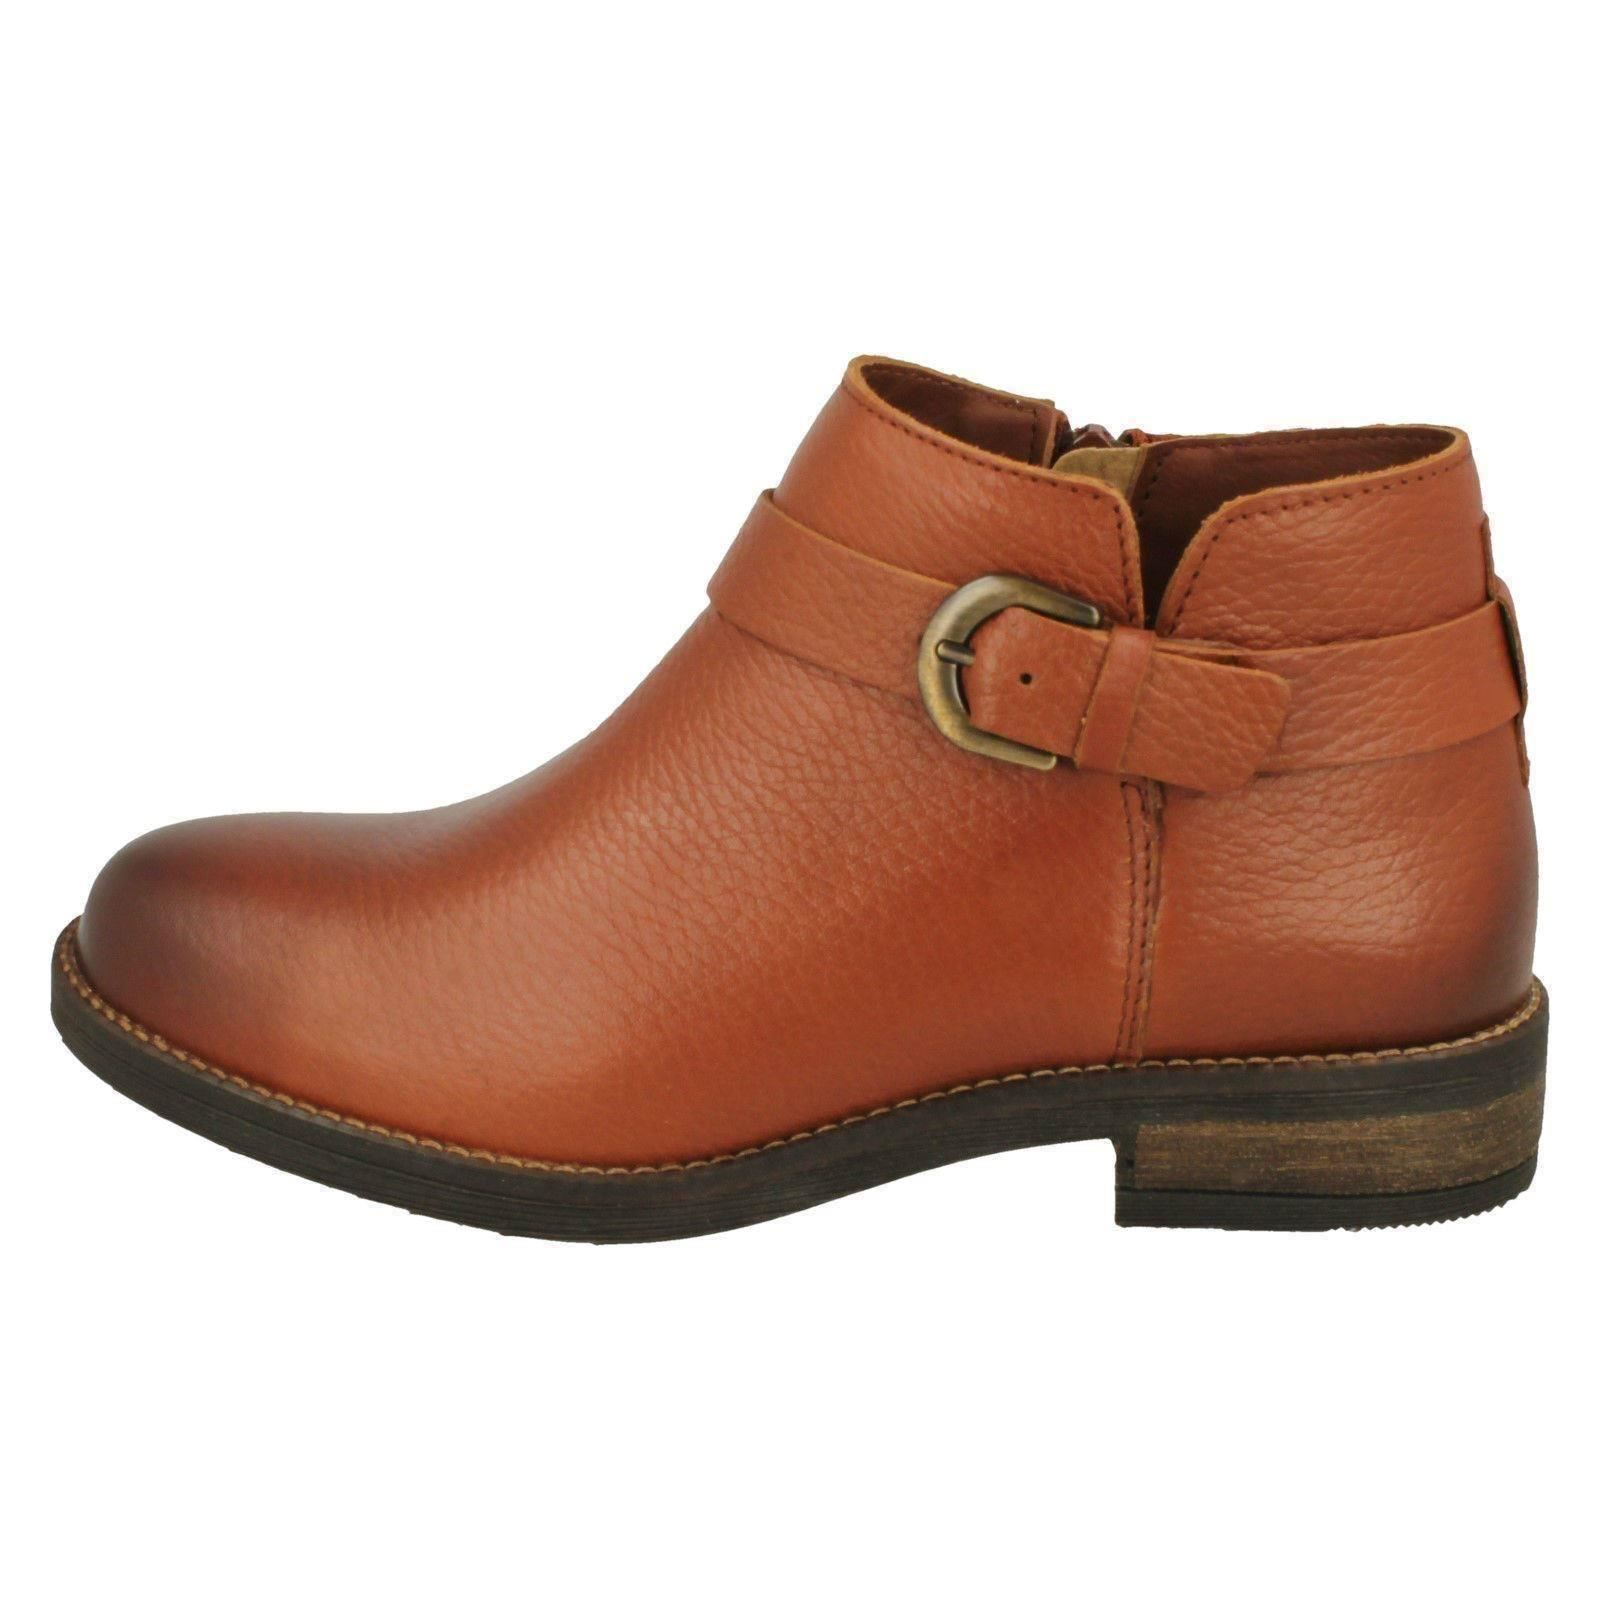 Ladies Clarks Buckle Detailed Ankle Boots Demi Tone